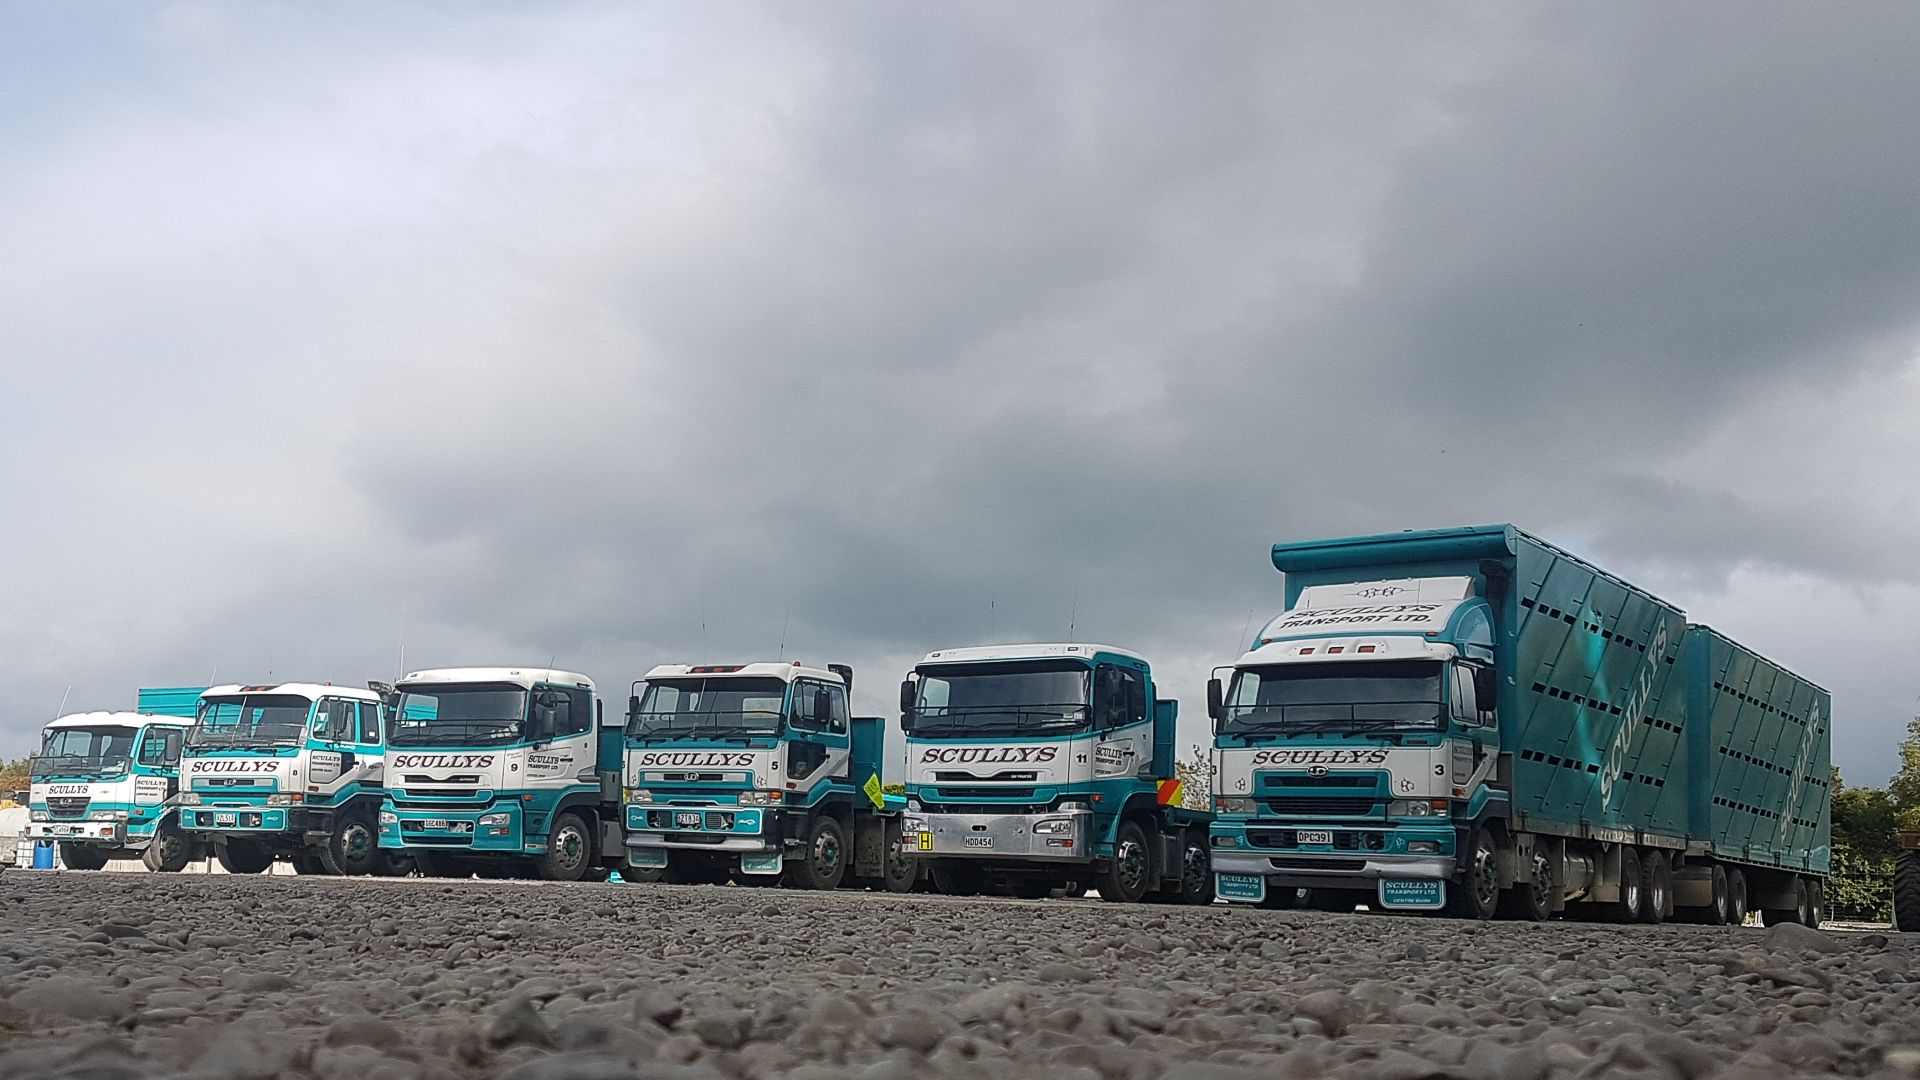 Scullys Transport truck line up.